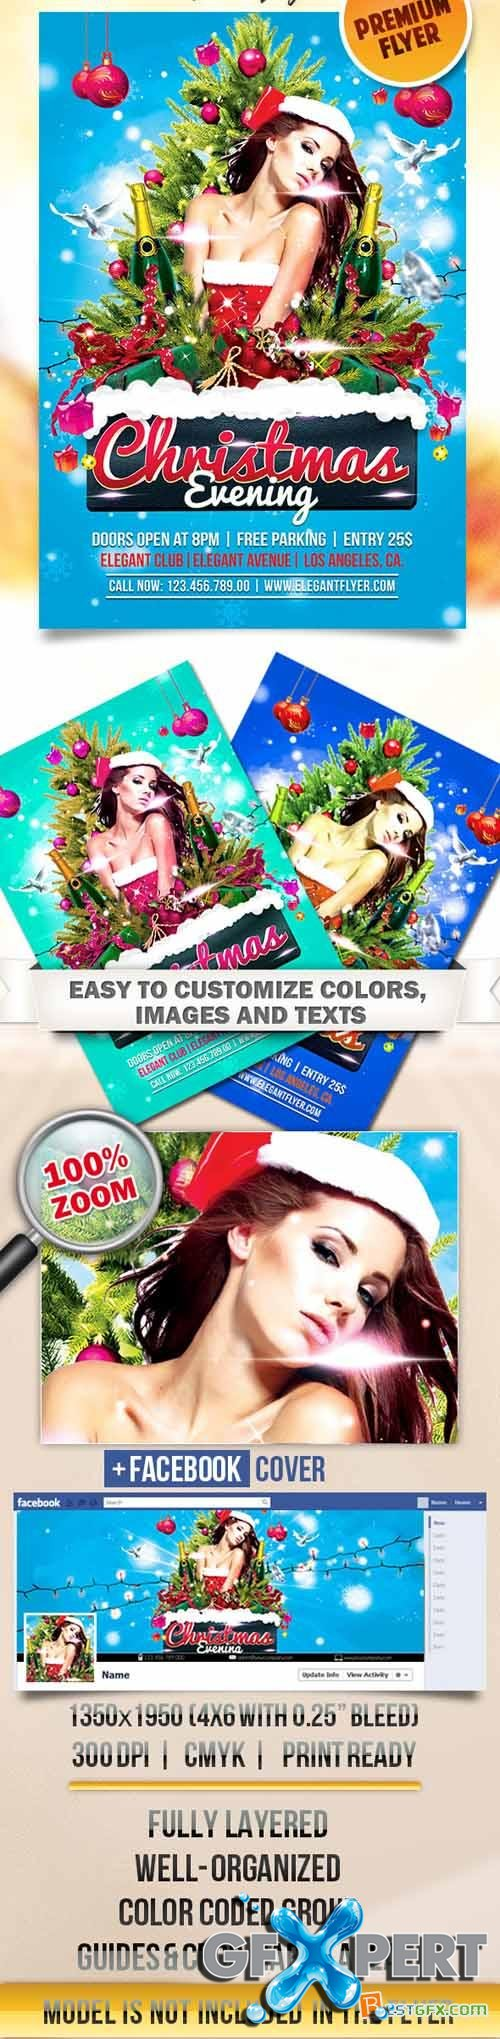 Flyer PSD Template - Christmas Evening + Facebook Cover